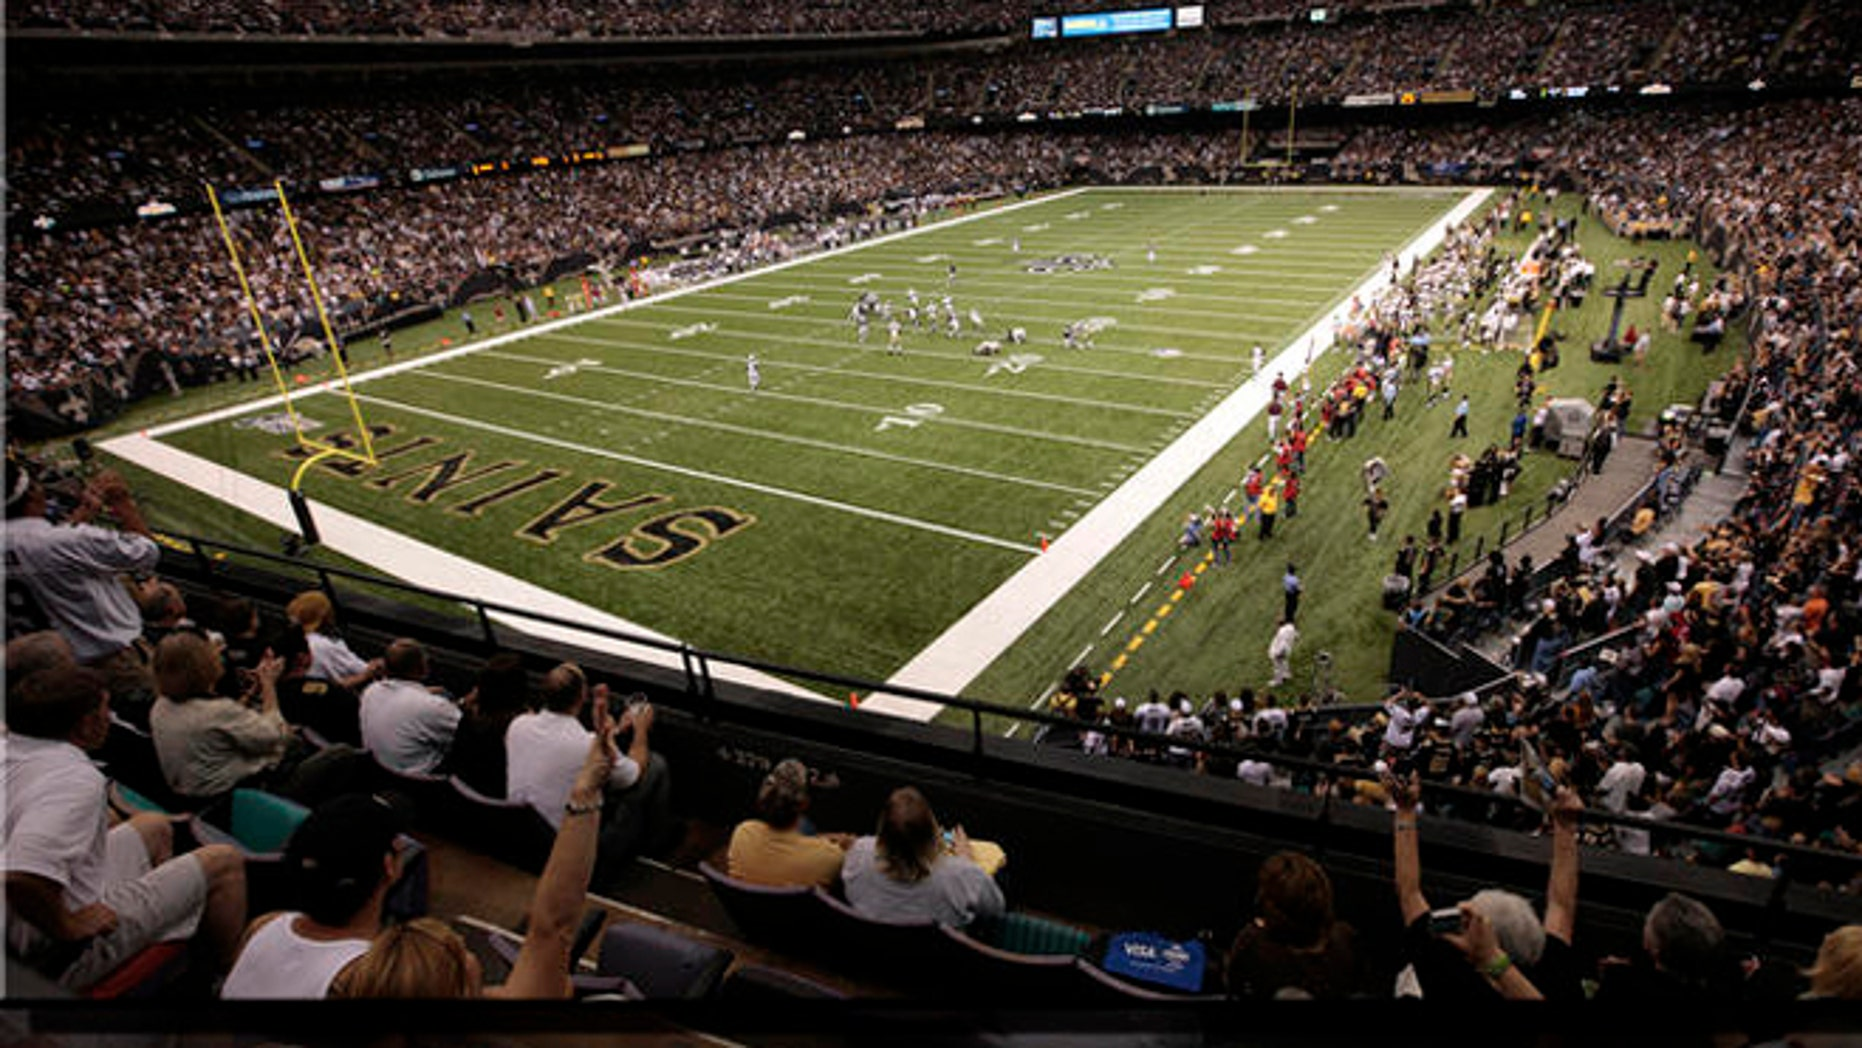 FILE: Aug. 21, 2010: The New Orleans Saints vs. Houston Texans during a preseason NFL game at the Louisiana Superdome in New Orleans, La.